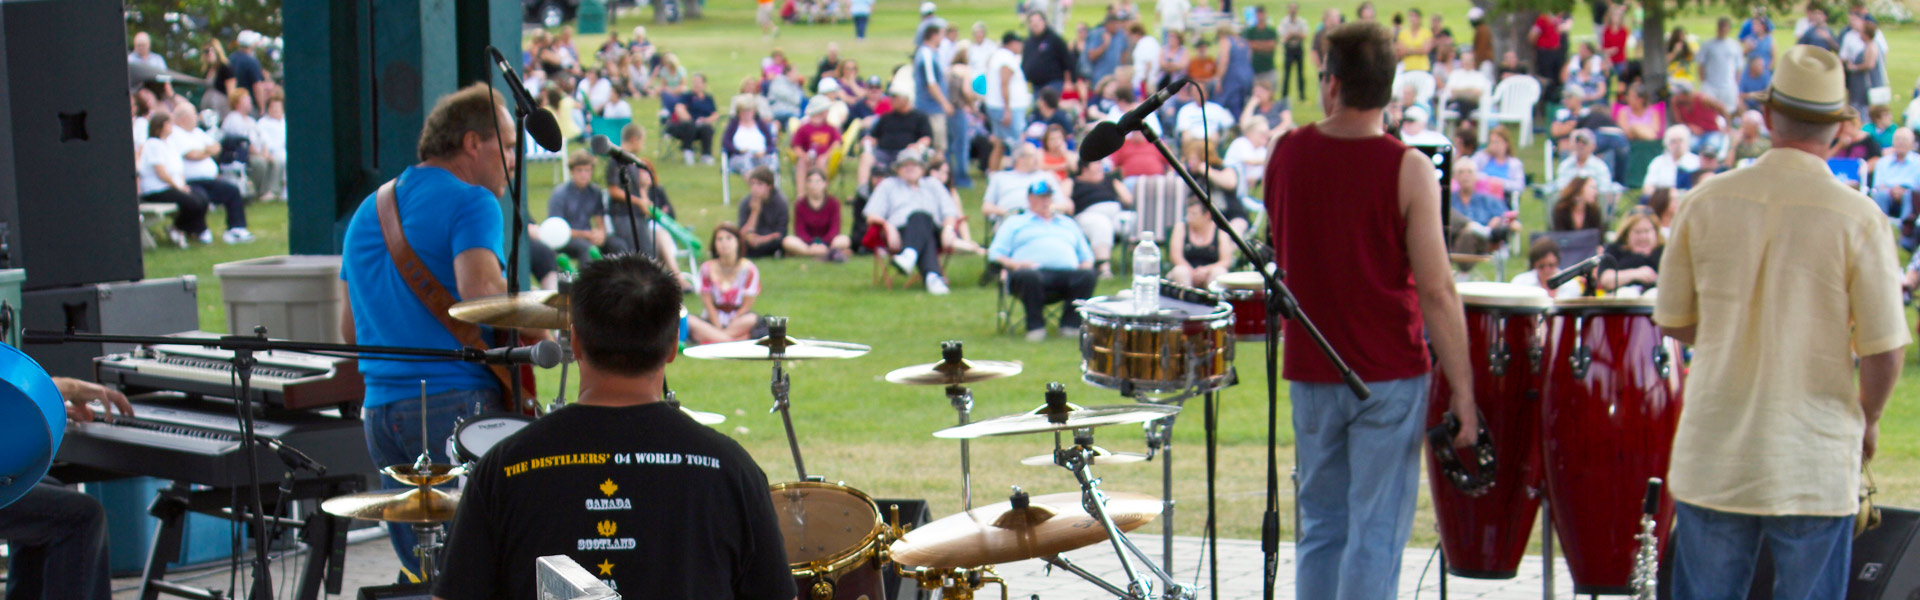 "<h2>Summer Concert Series</h2> Celebrate the days of summer with live musical performances featuring local talent. <a href=""http://www.tourismtimmins.com/tourism-timmins-news/timmins-summer-concert-series/"">Full details...</a>"